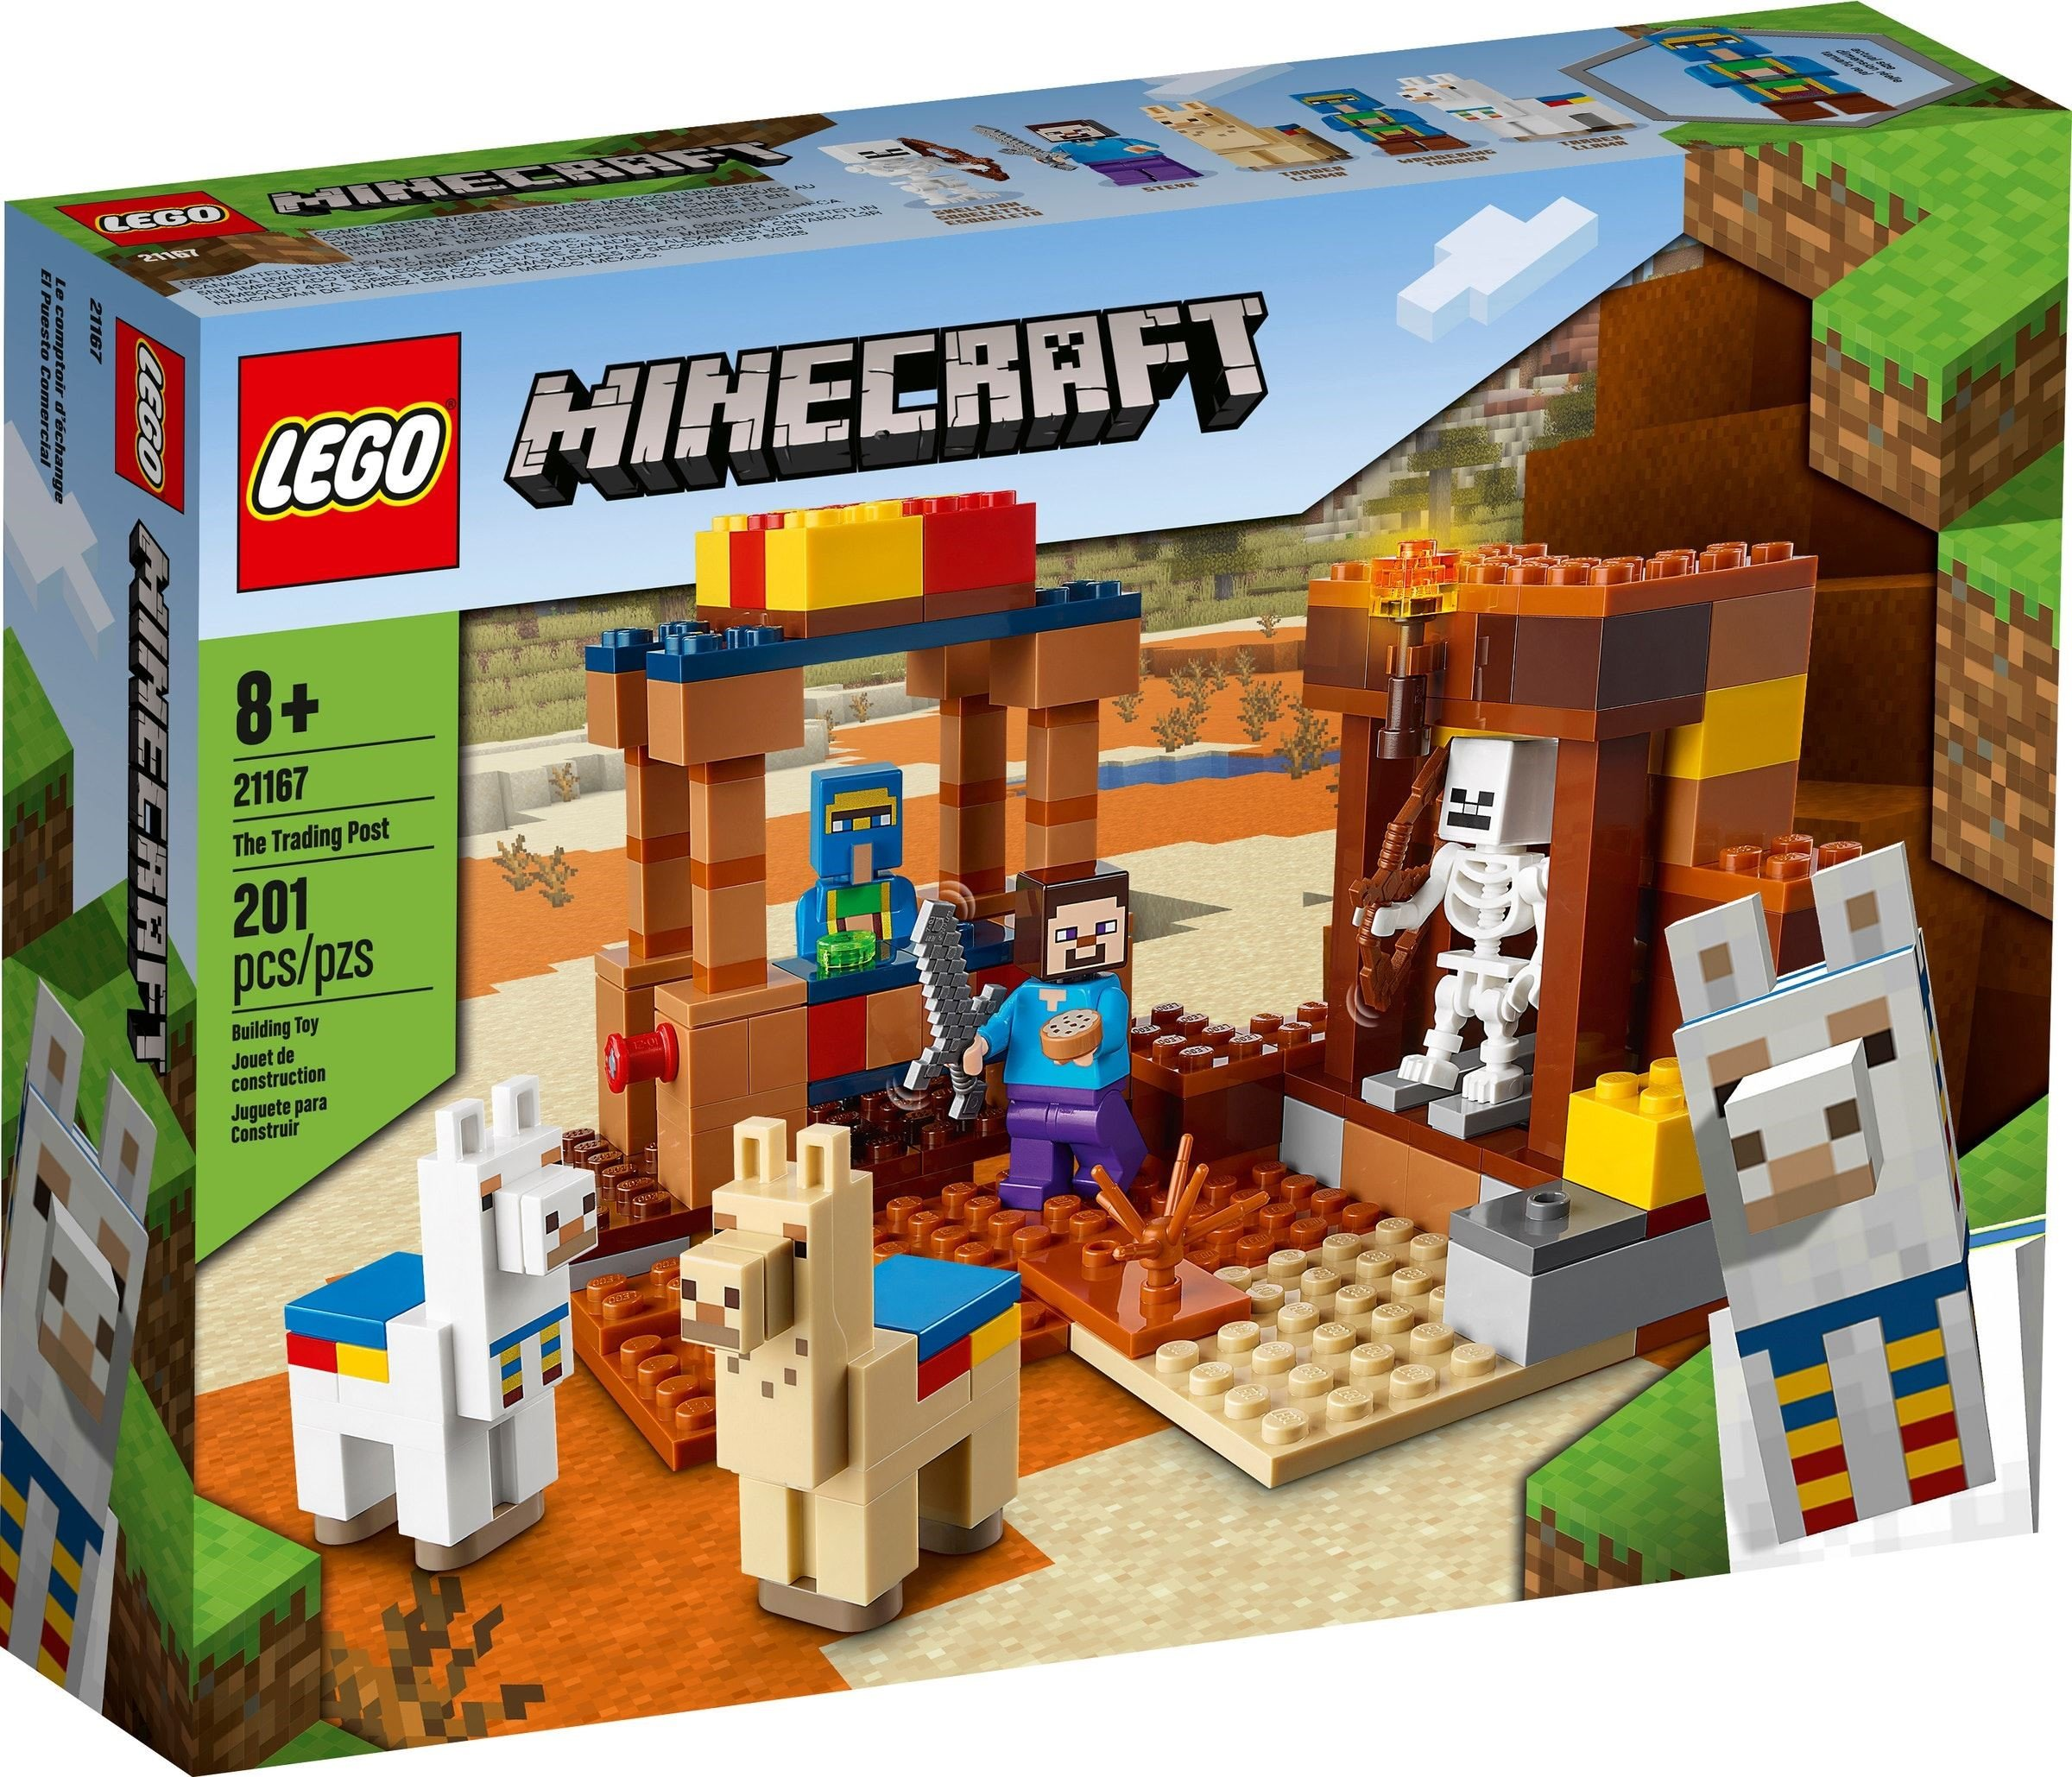 LEGO Minecraft - The Trading Post (21167)